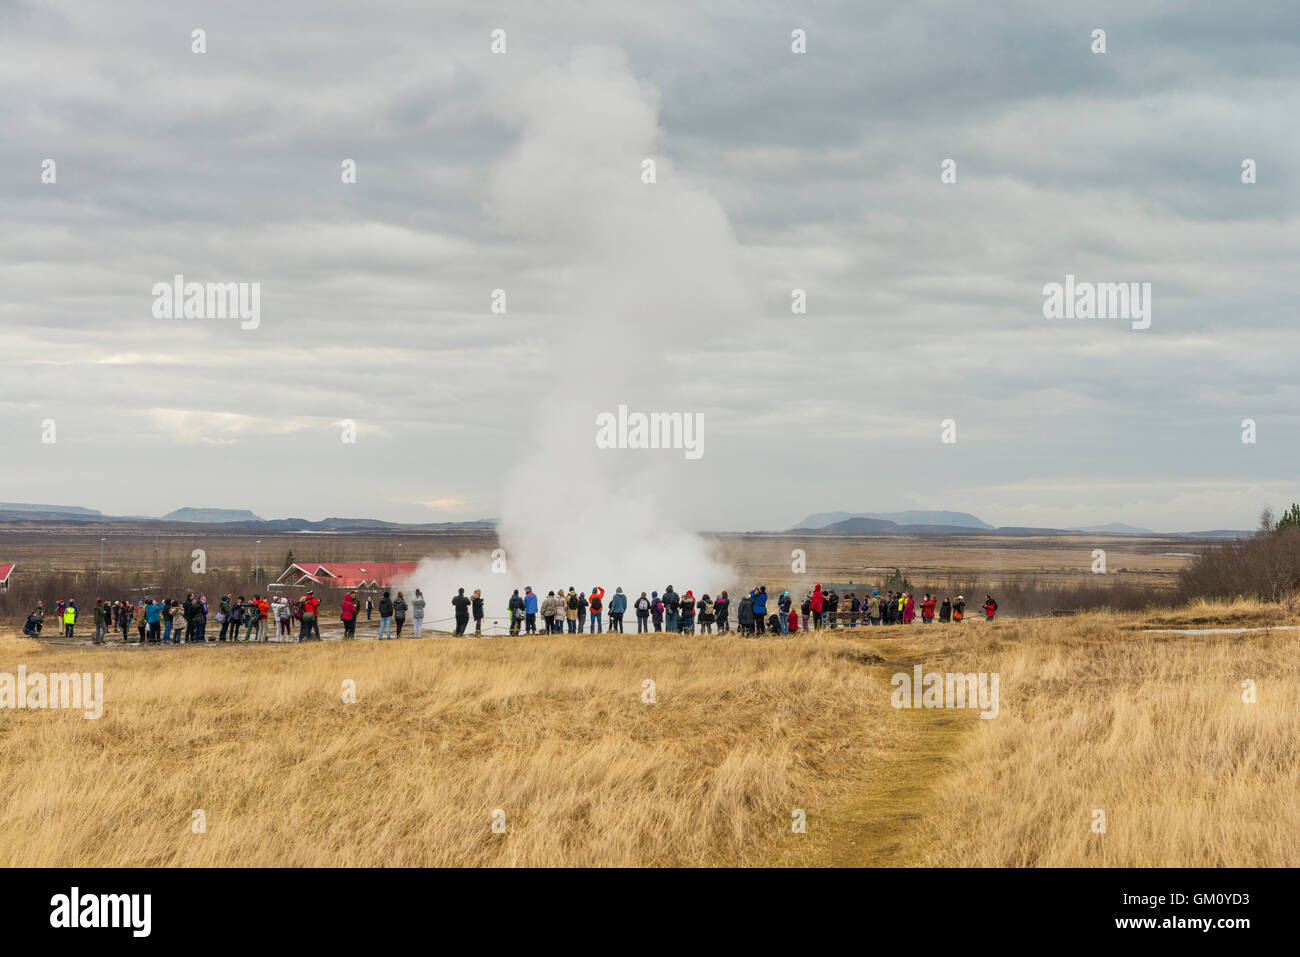 The fountain geyser 'Stokkur' is located in a geothermal area in southwest Iceland, east of Reykjavik. Erupts - Stock Image